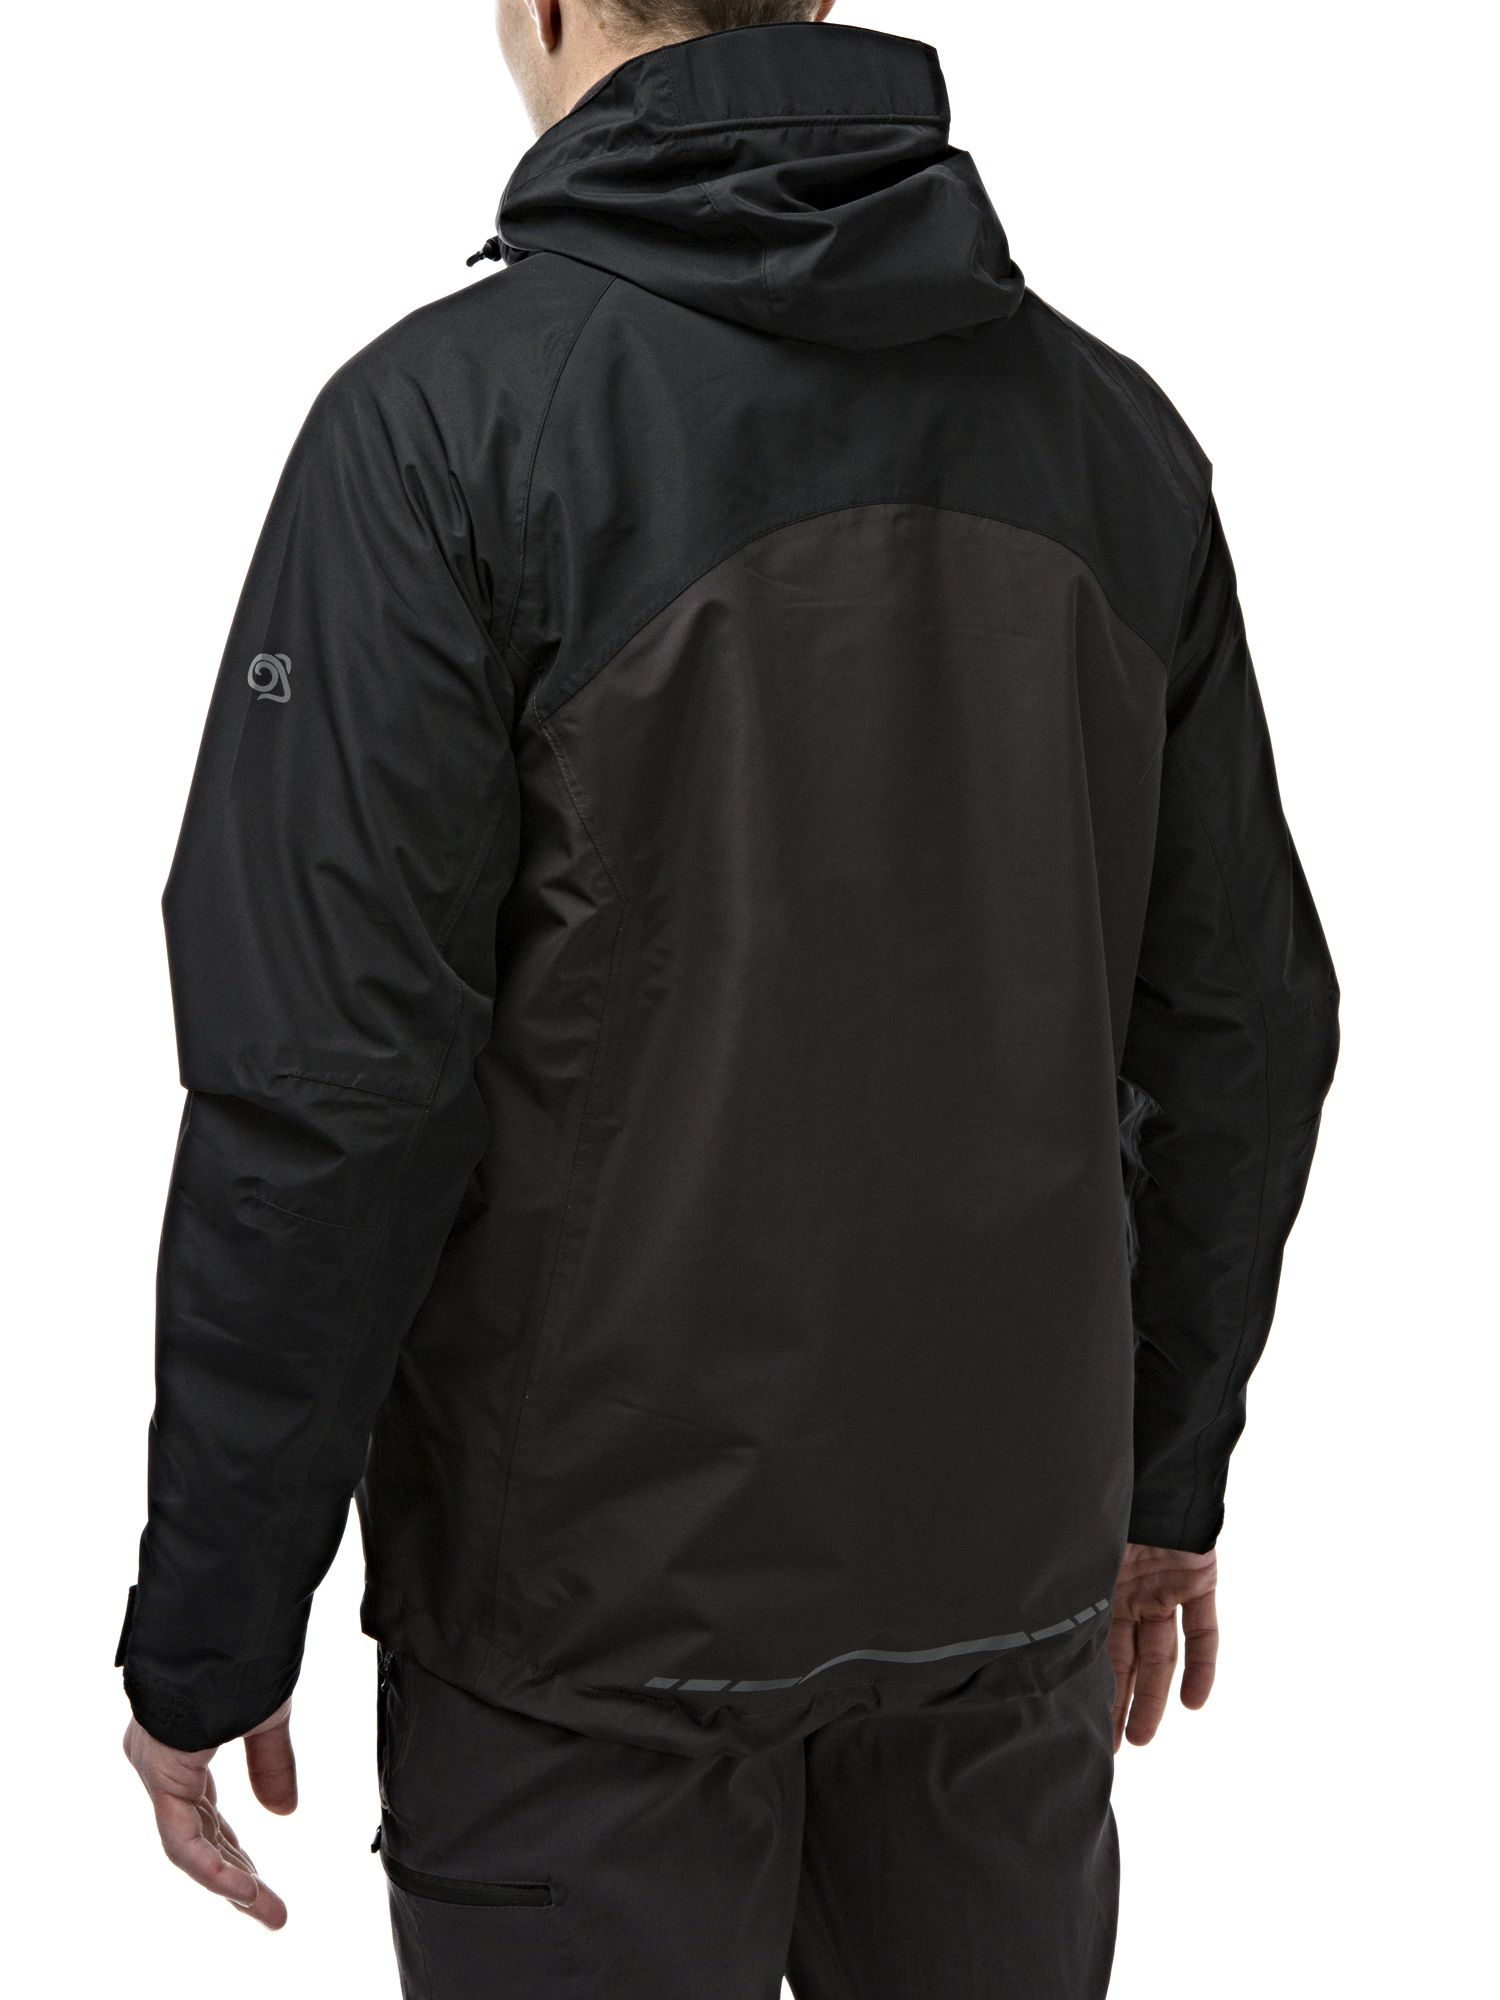 Craghoppers Reaction Lite II Jacket Black  House of Fraser